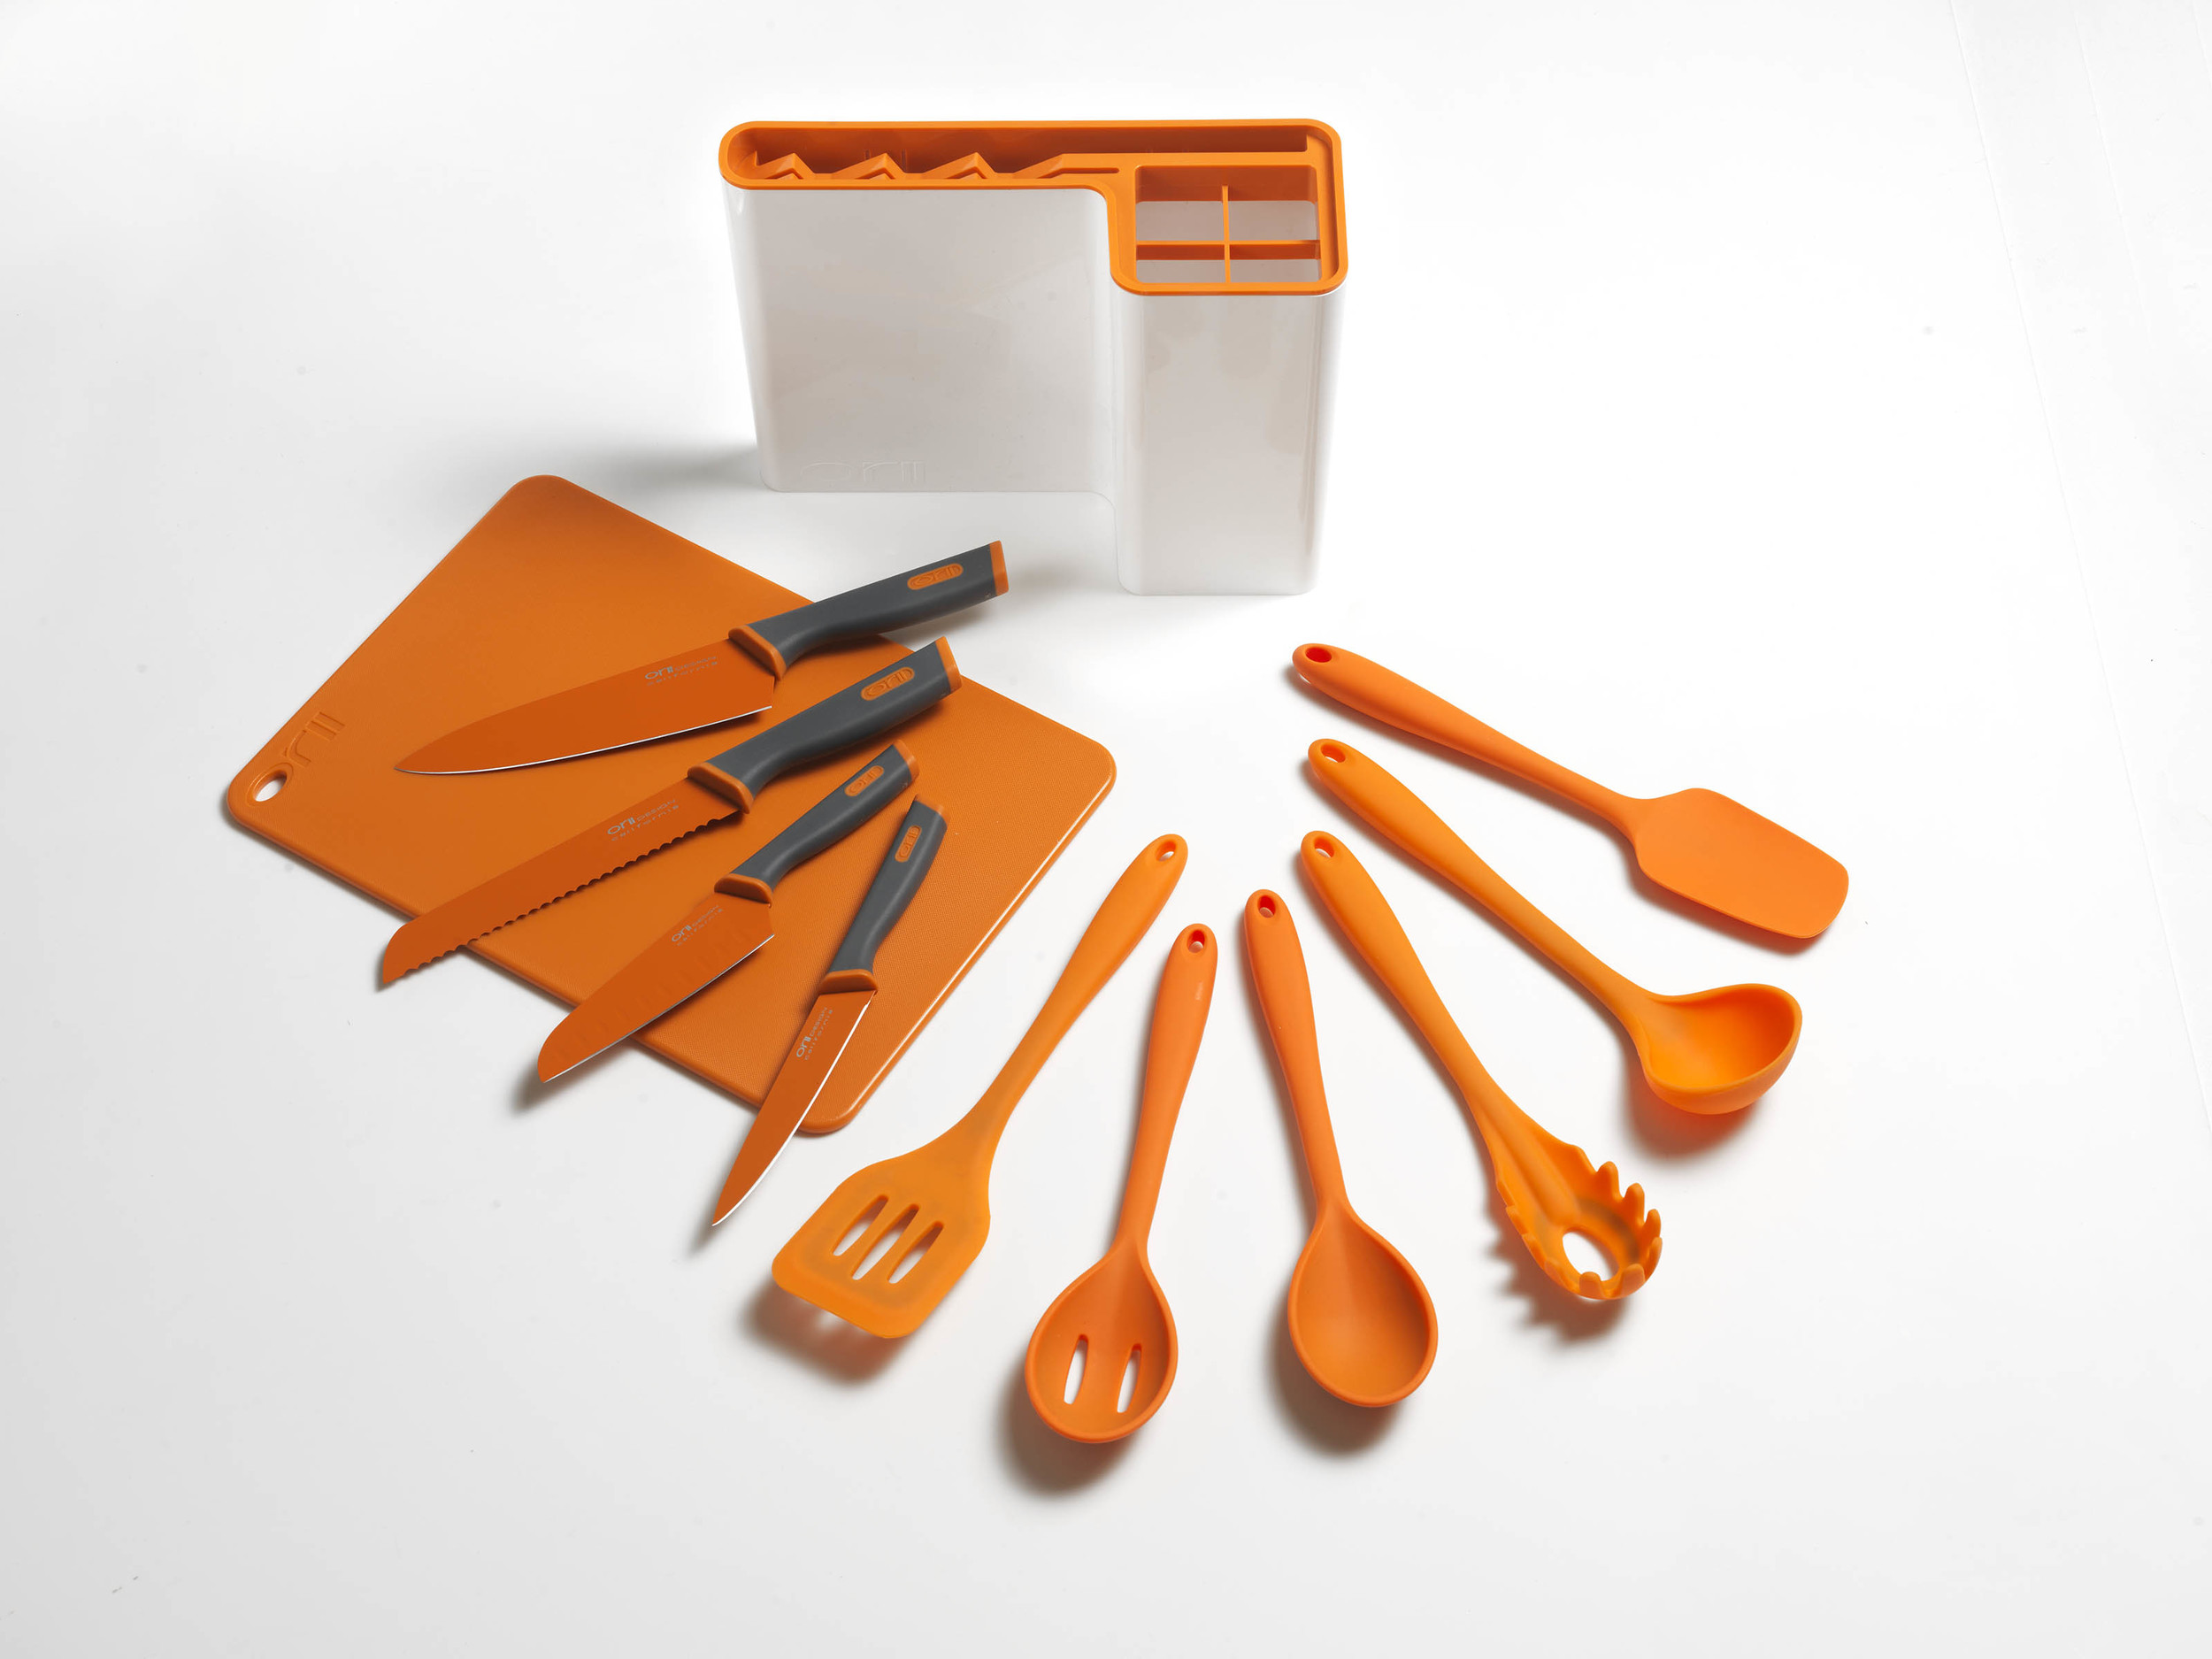 Orii 12PC MONO KITCHEN ORGANIZATION SET   - LUMINOUS ORANGE                                                             TRADITIONAL UTENSILS